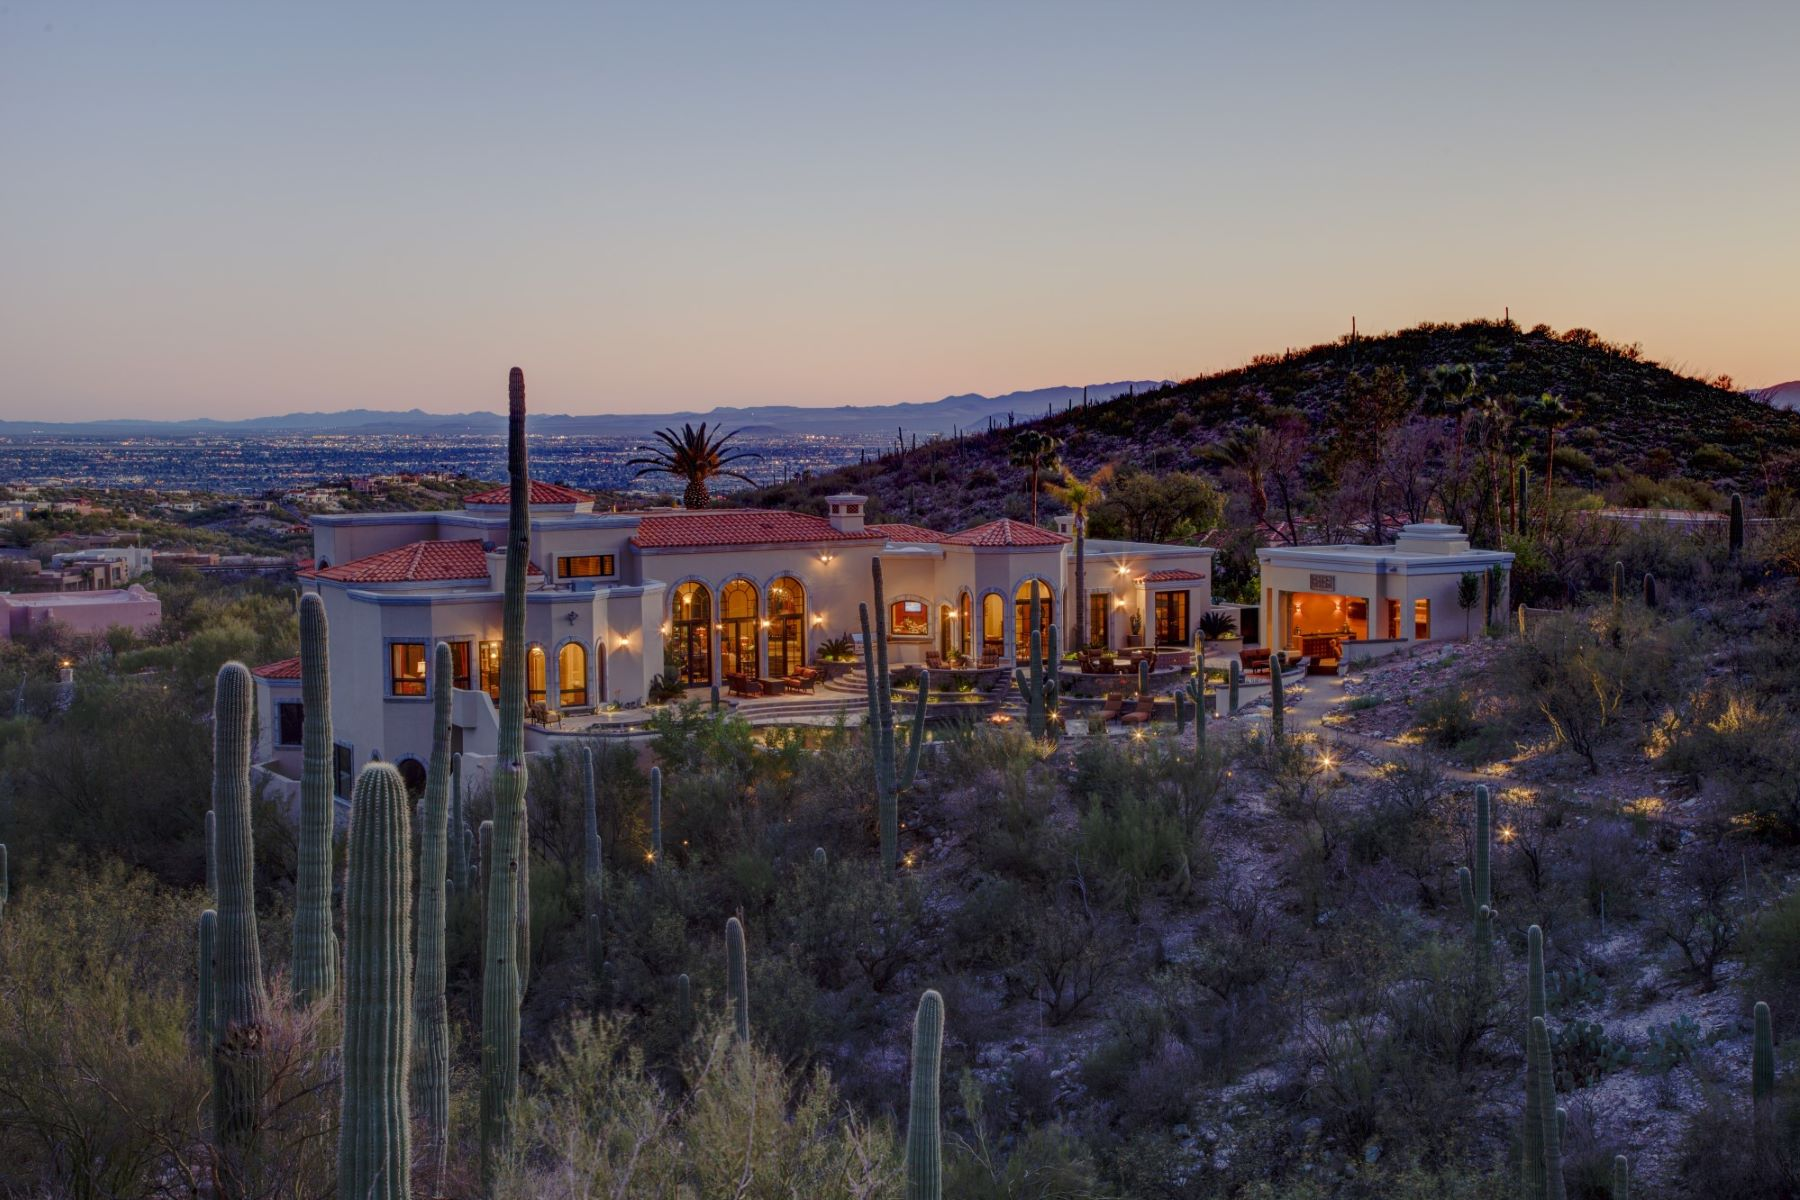 Single Family Homes for Sale at One Of The Finest Homes In Tucson 5831 E Finisterra Tucson, Arizona 85750 United States